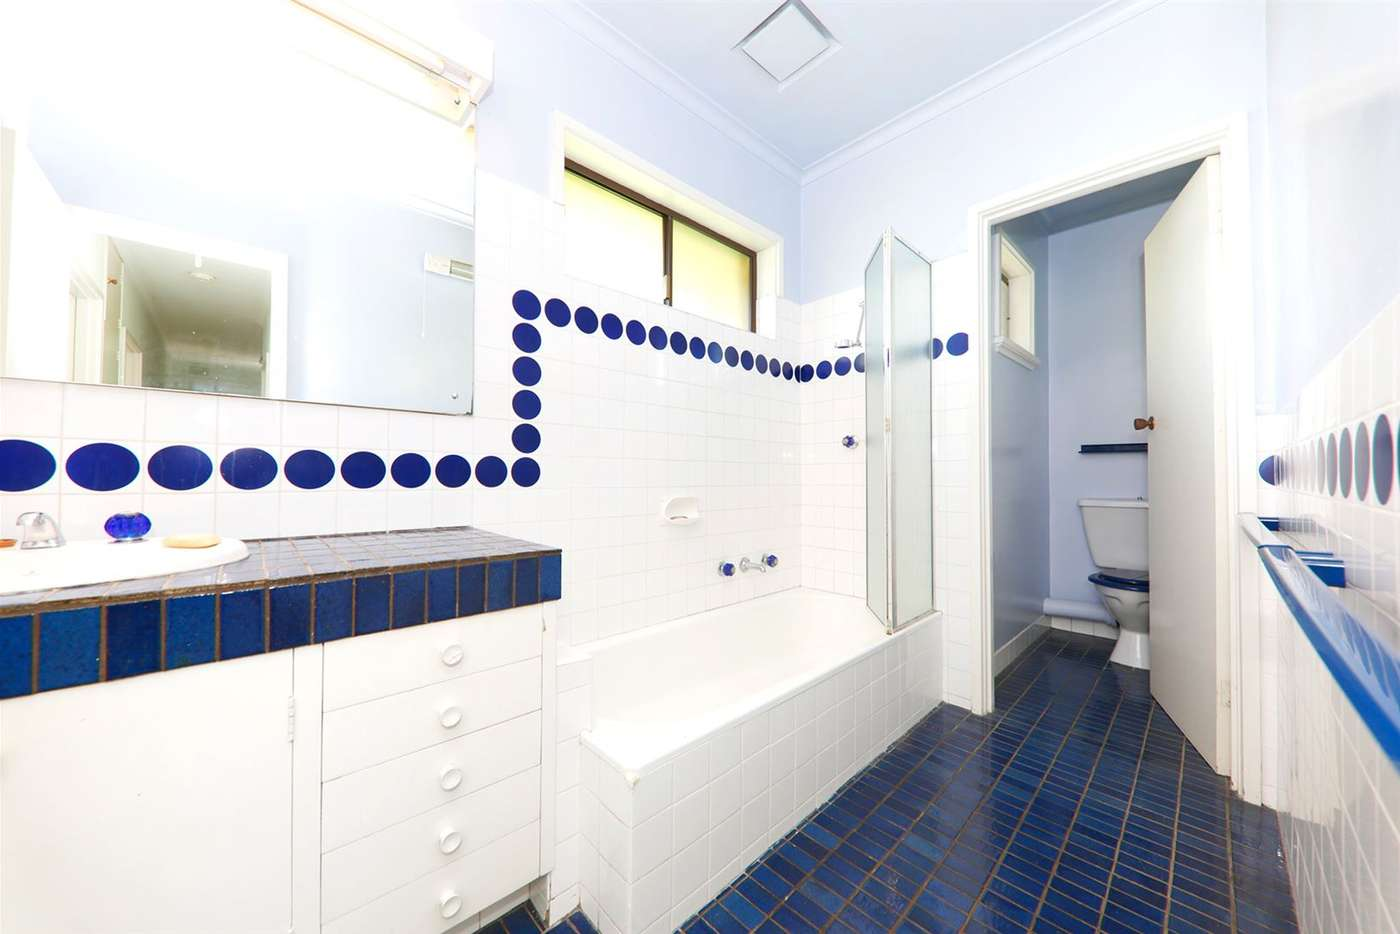 Seventh view of Homely house listing, 15 Kenny Street, Balwyn North VIC 3104